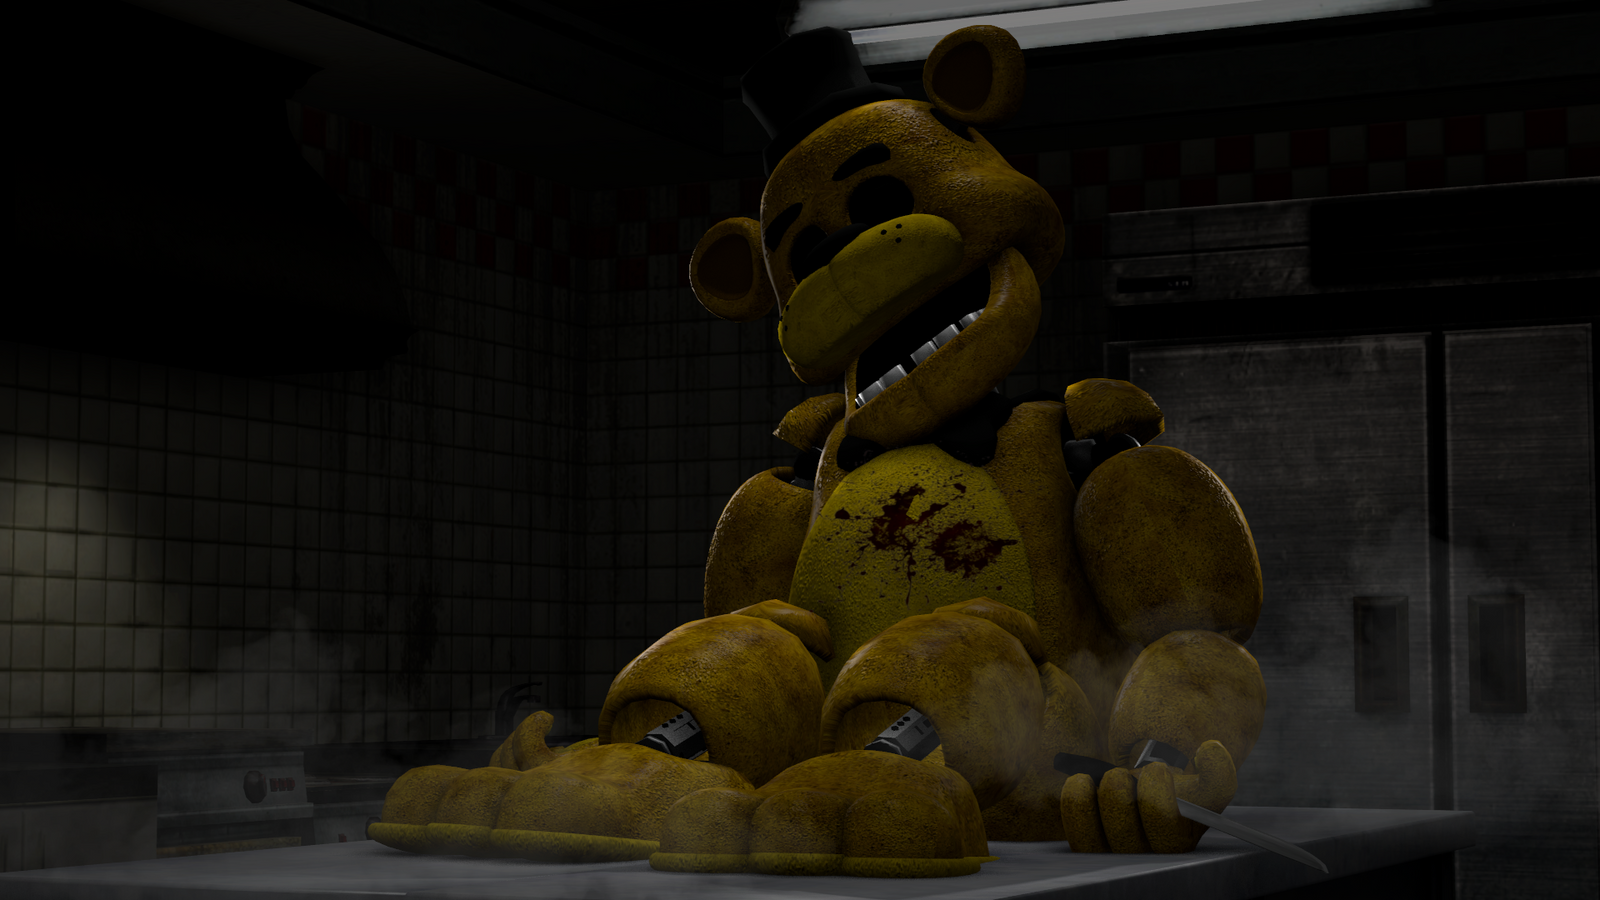 SFM FNAF | Golden Freddy in the Kitchen by MARTIN3X on ...